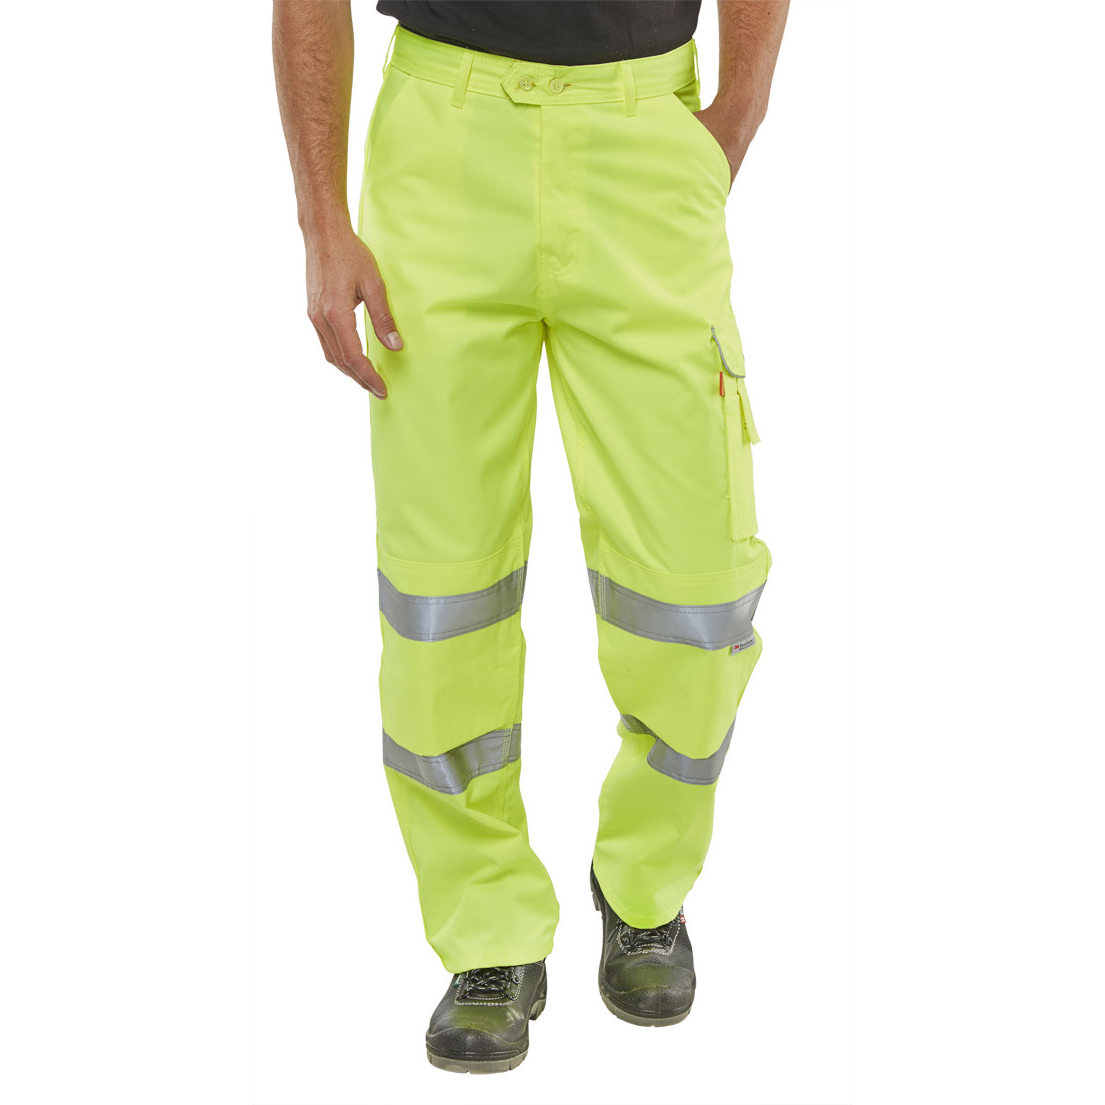 BSeen Trousers Polycotton Hi-Vis EN471 Saturn Yellow 30 Ref PCTENSY30 *Up to 3 Day Leadtime*